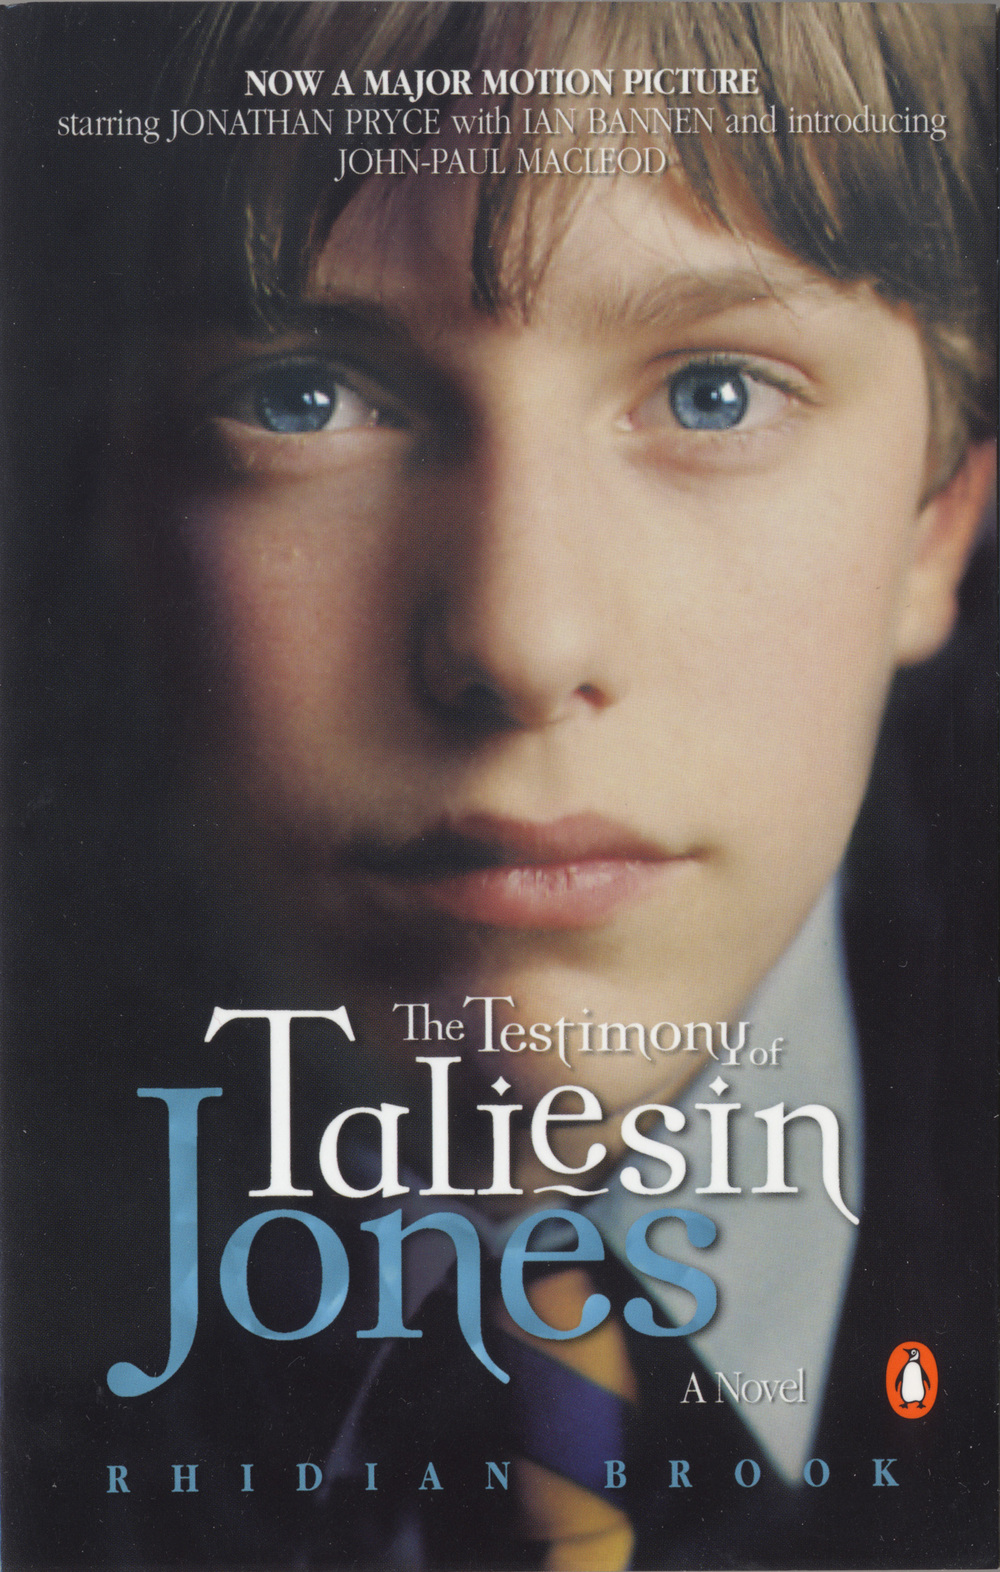 The Testimony Of Taliesin Jones was made into a feature starring Jonathan Pryce and Ian Bannen. It was released in the US as Small Miracles. It was almost a very good film.